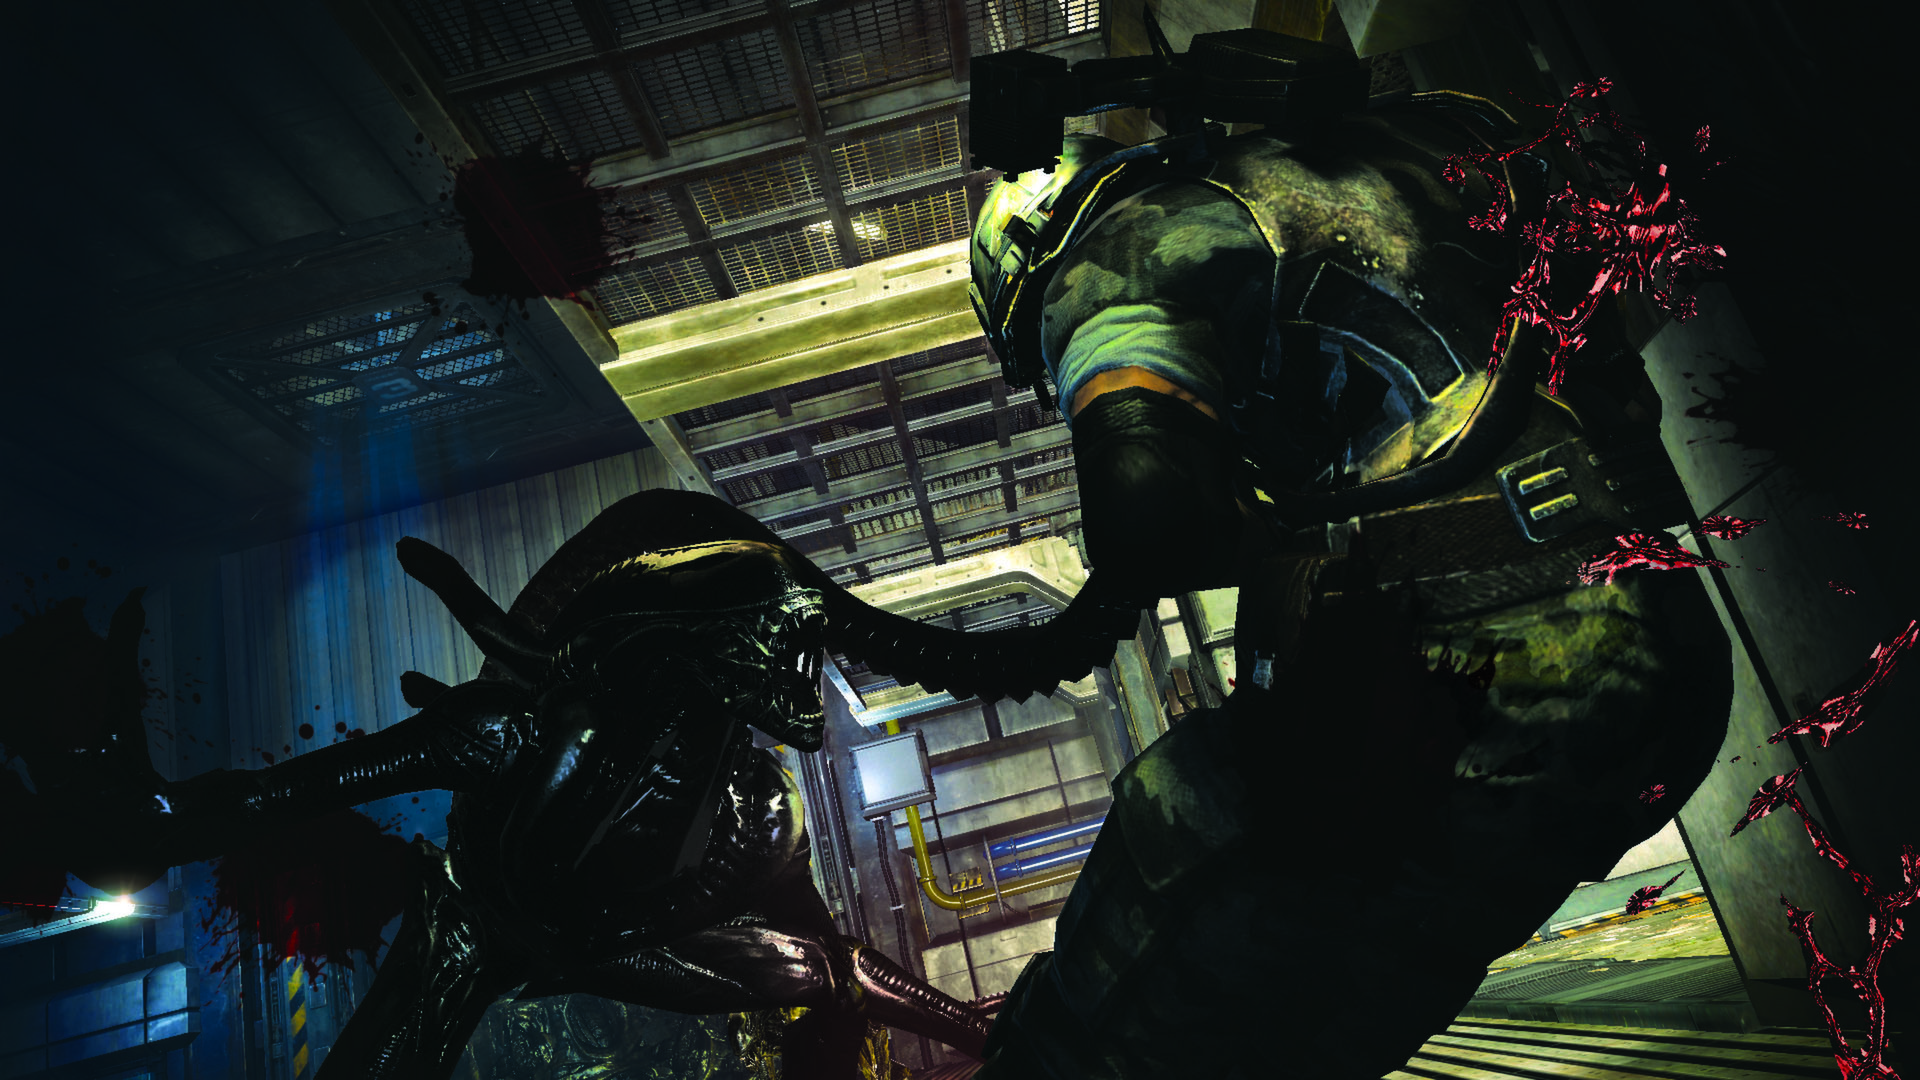 'Aliens: Colonial Marines' sees quick update